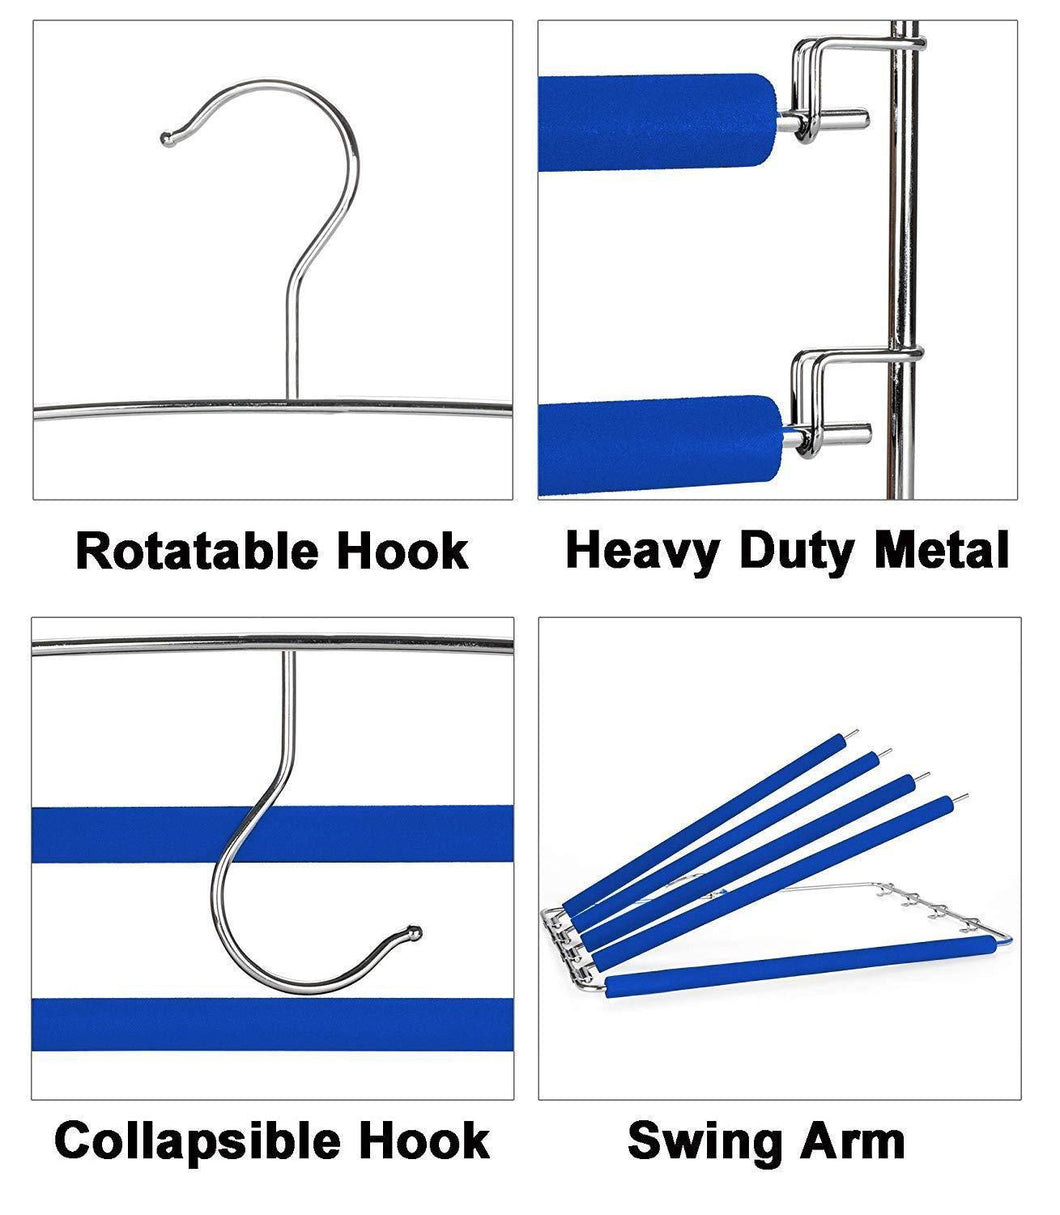 New rosinking slack hangers swing arm pants 2 pack multi layers removeable stainless steel scarf slack hangers non slip clothes rack with foam padded rotatable hook closet space saving organizer